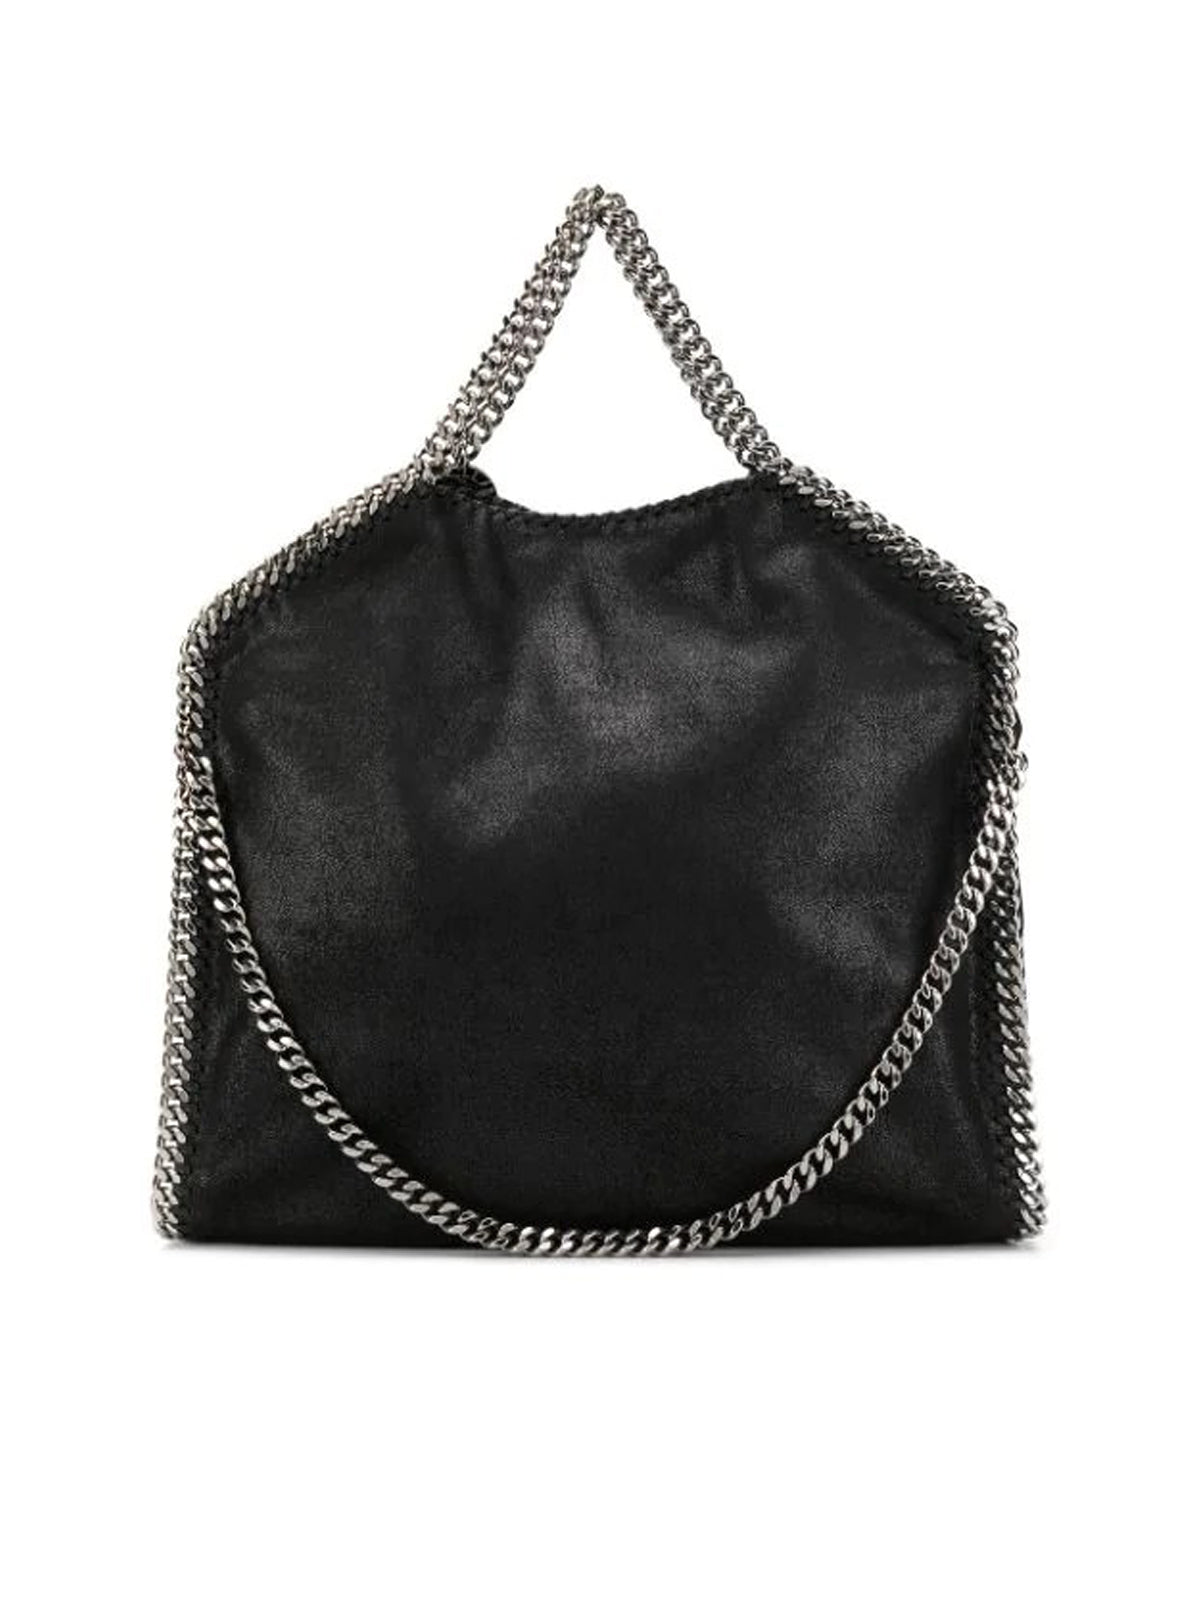 3 CHAIN FALABELLA SHAGGY DEER BAG